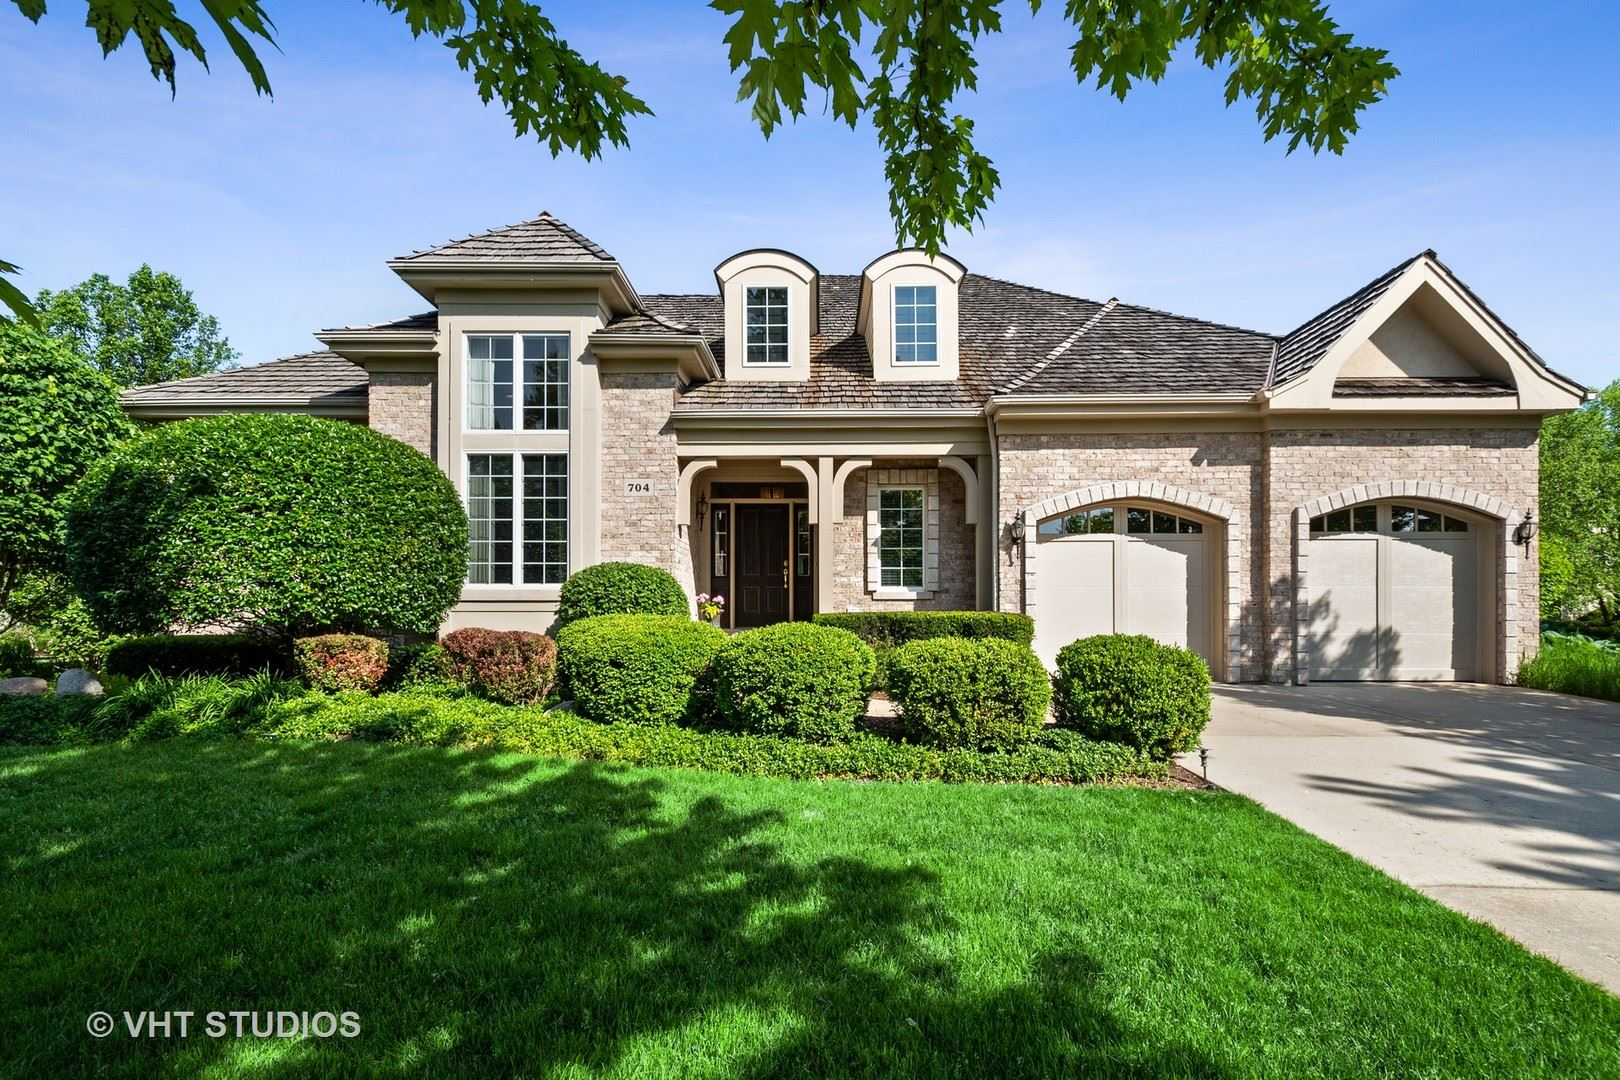 Photo for 704 Crofton Court, Inverness, IL 60010 (MLS # 10739020)